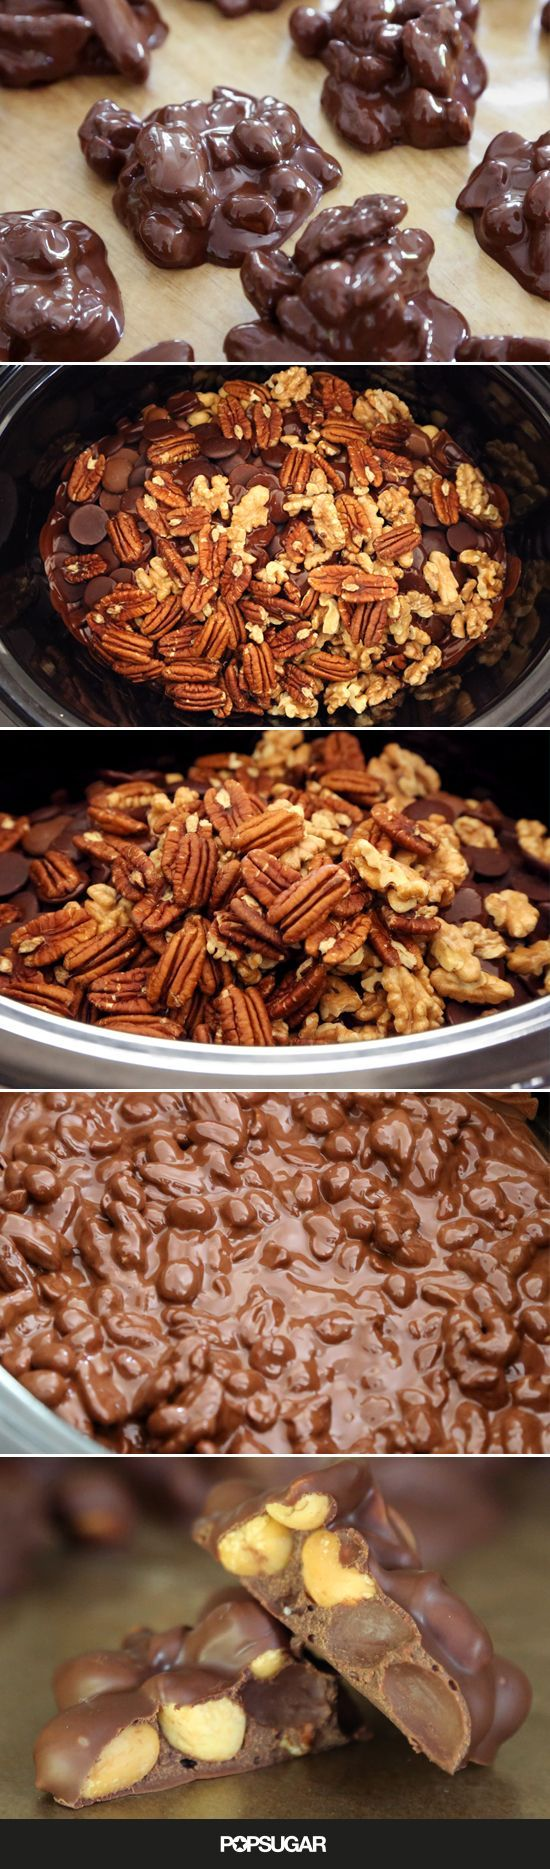 These decadent crockpot candies (chocolate clusters stuffed with nuts) are the perfect gift.